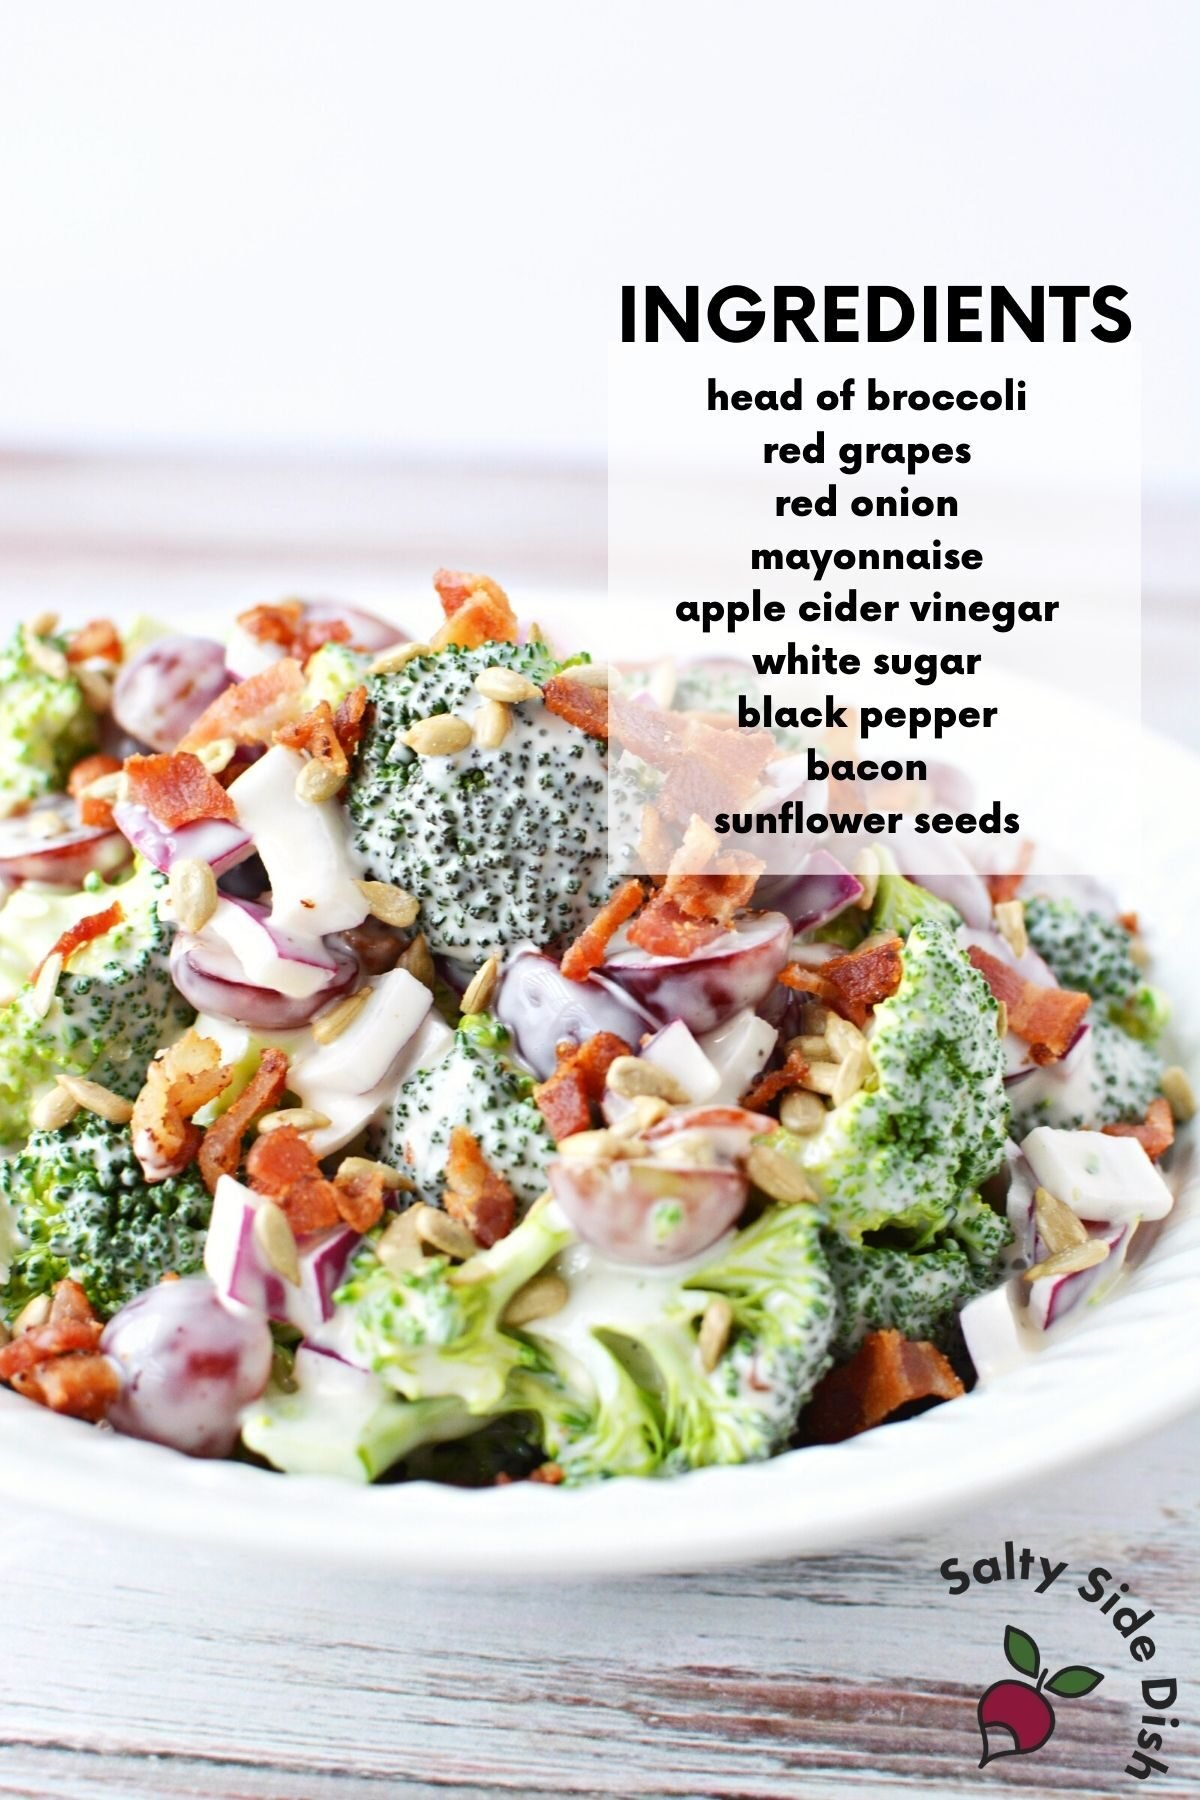 close up list of ingredients for broccoli salad recipe.